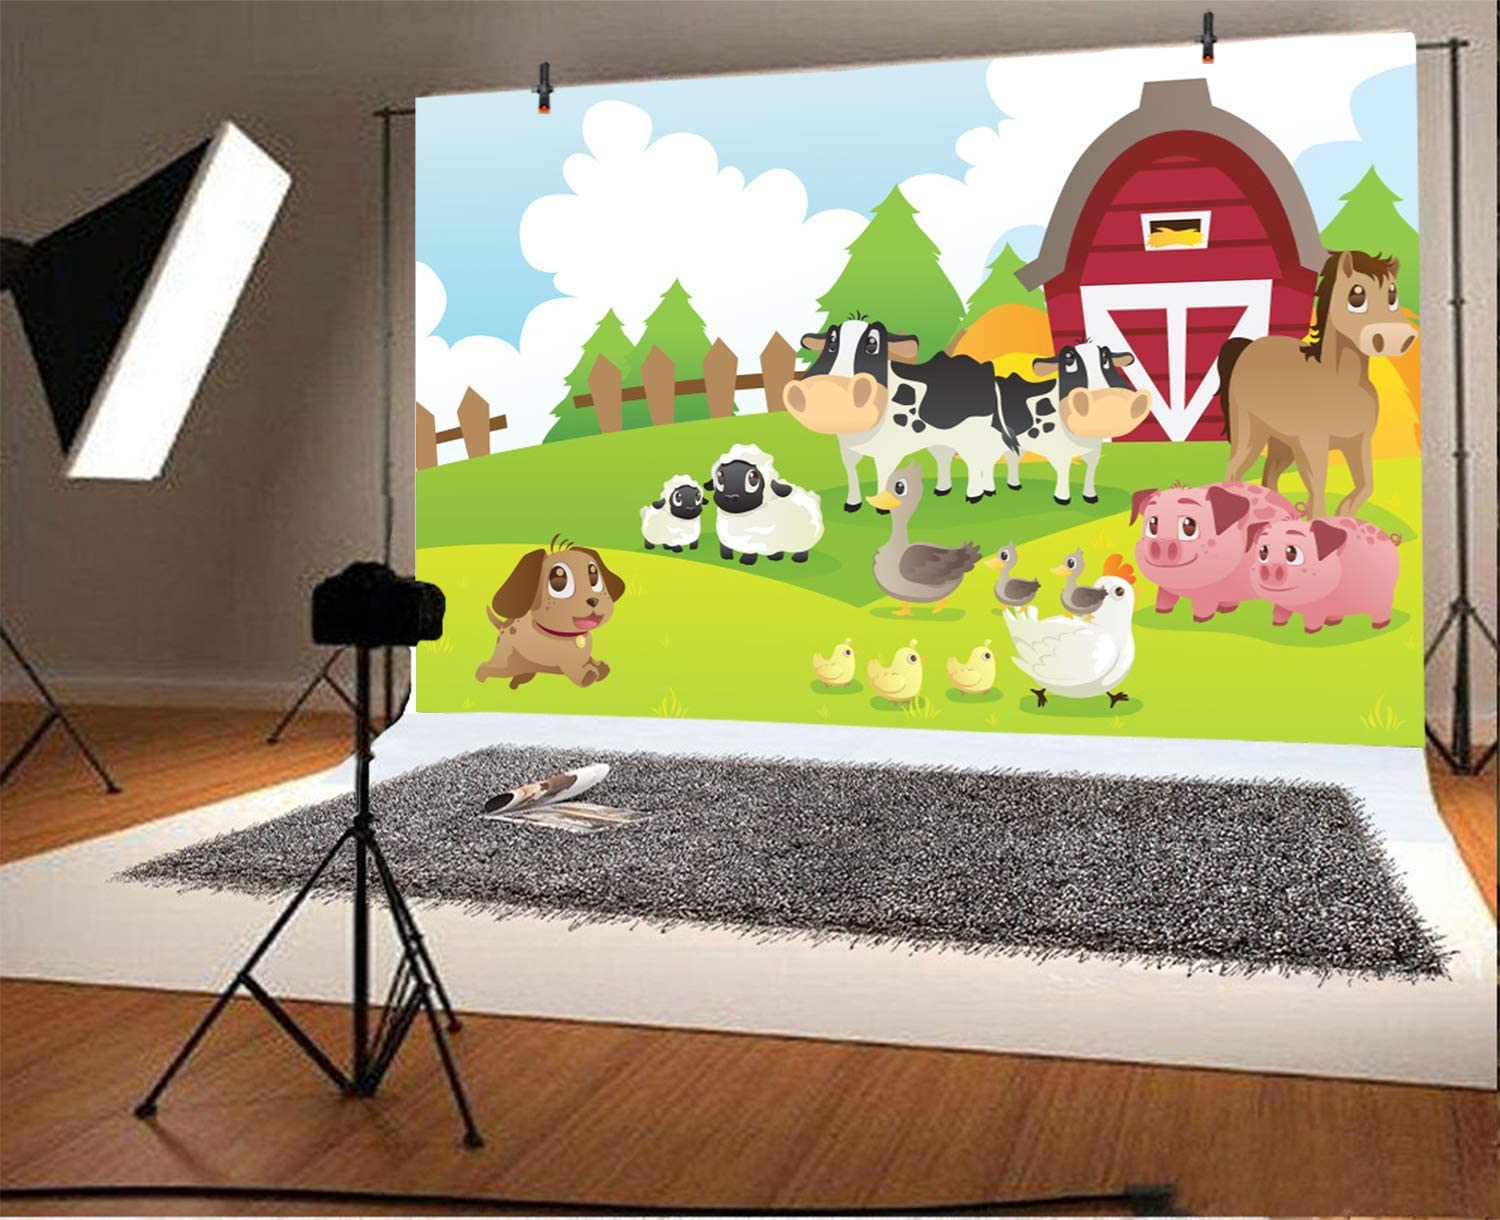 8x12 FT Cow Print Vinyl Photography Backdrop,Cow Hide Pattern with Black Spots Farm Life with Cattle Camouflage Animal Skin Background for Photo Backdrop Baby Newborn Photo Studio Props